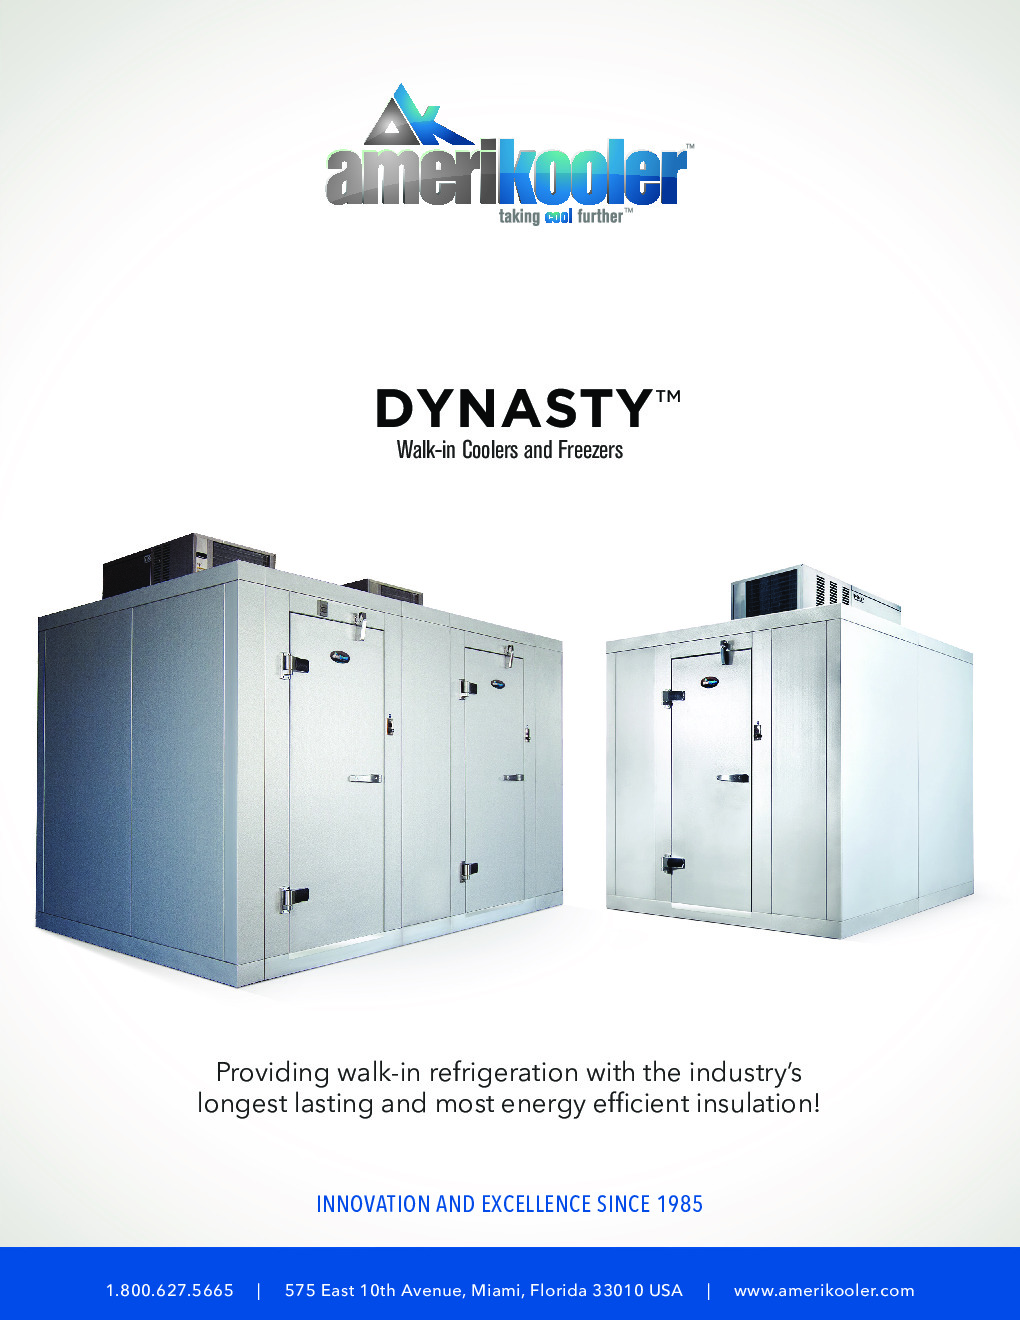 AmeriKooler DW091977N-9/10-SC 9' X 19' Walk-In Cooler, 10' L Cooler without Floor and 9' L Freezer, Self Contained